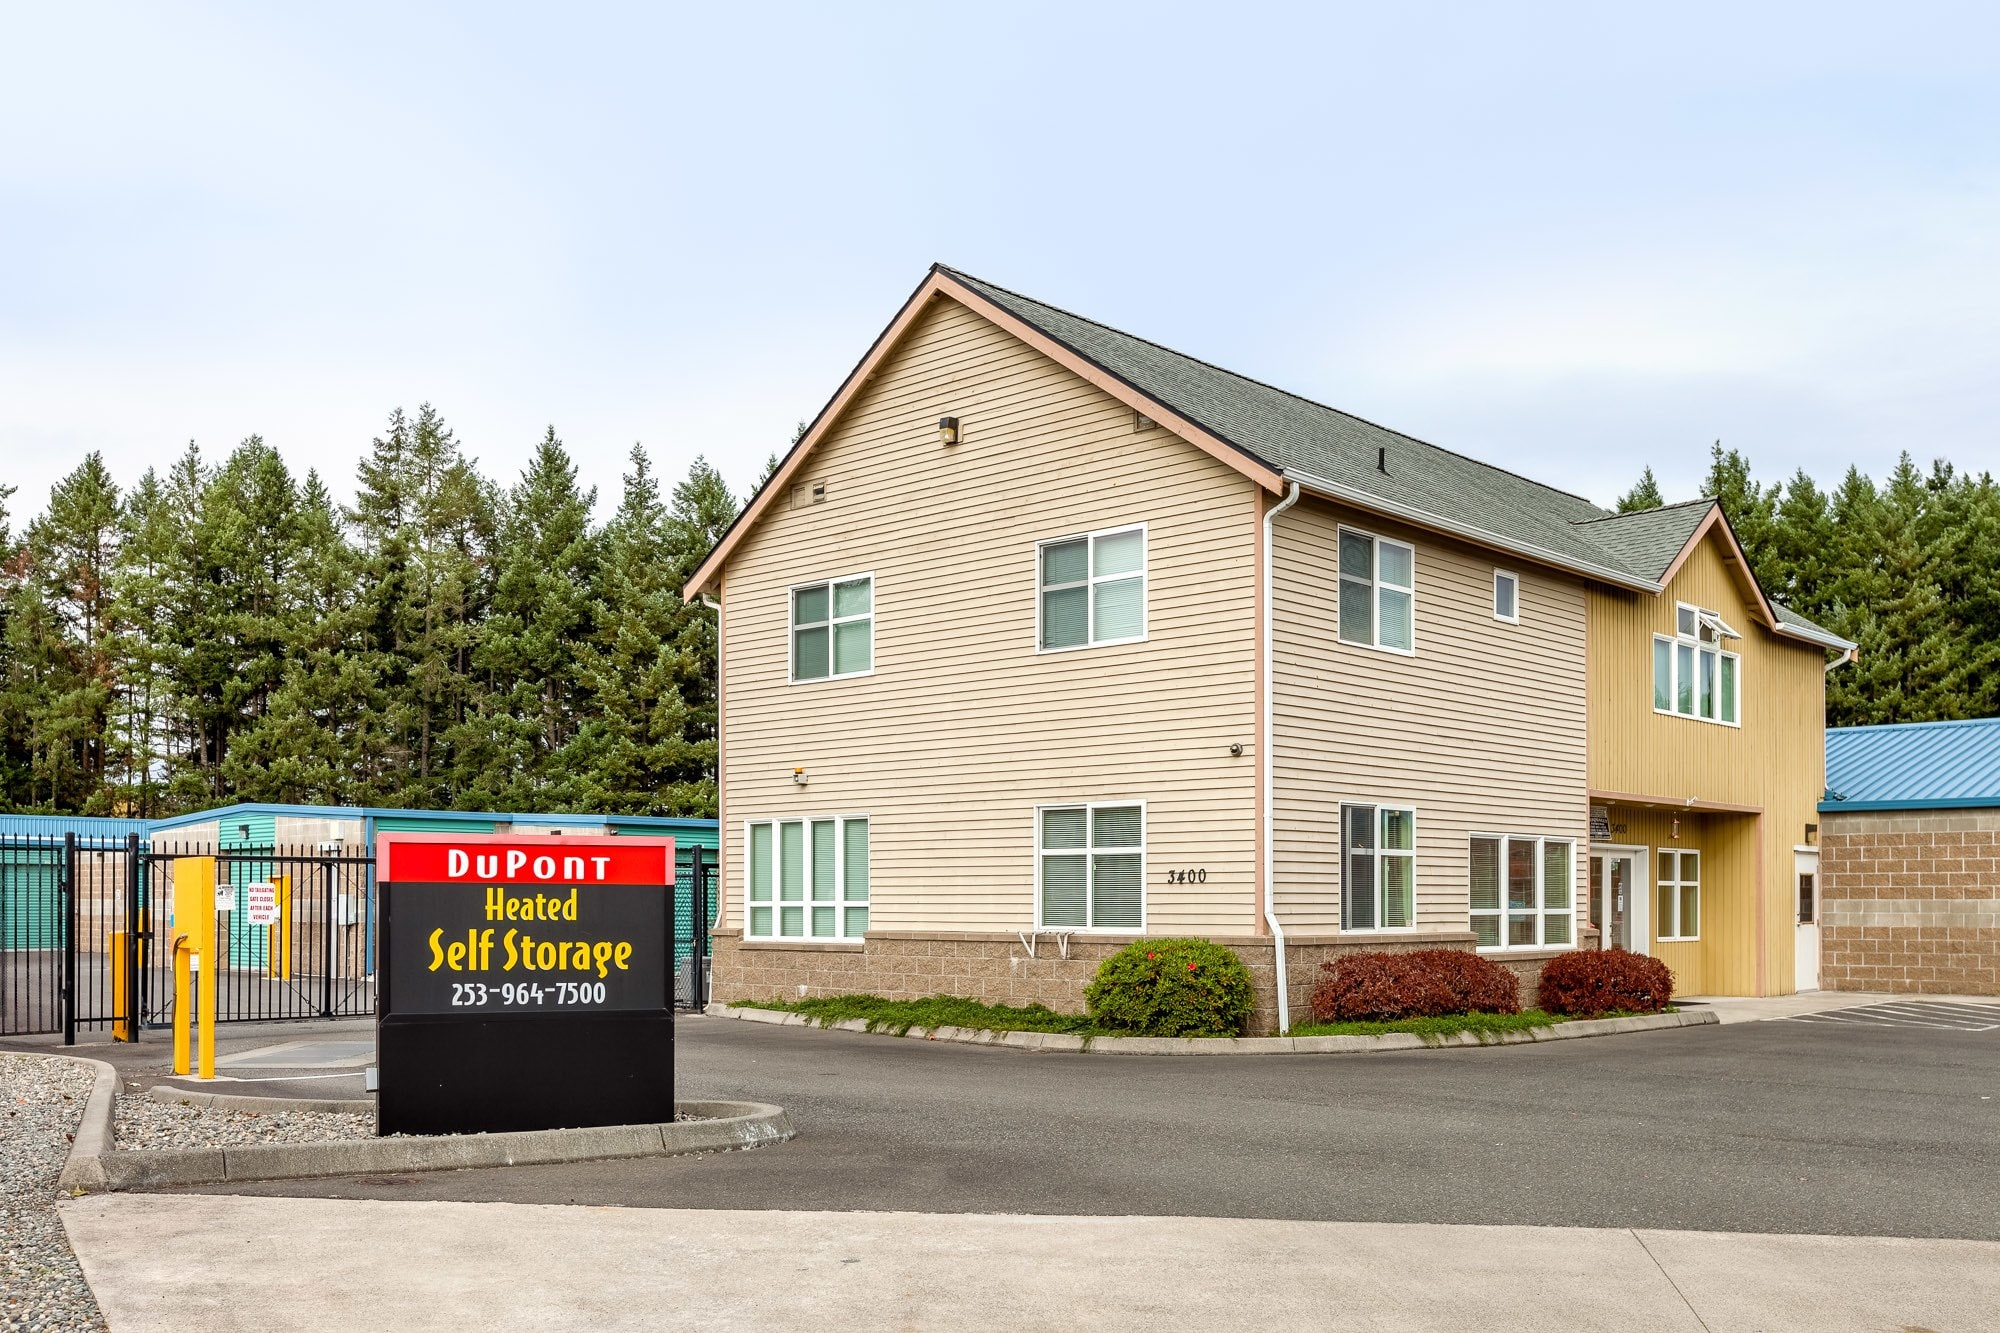 Find The Best Self Storage In Dupont Wa